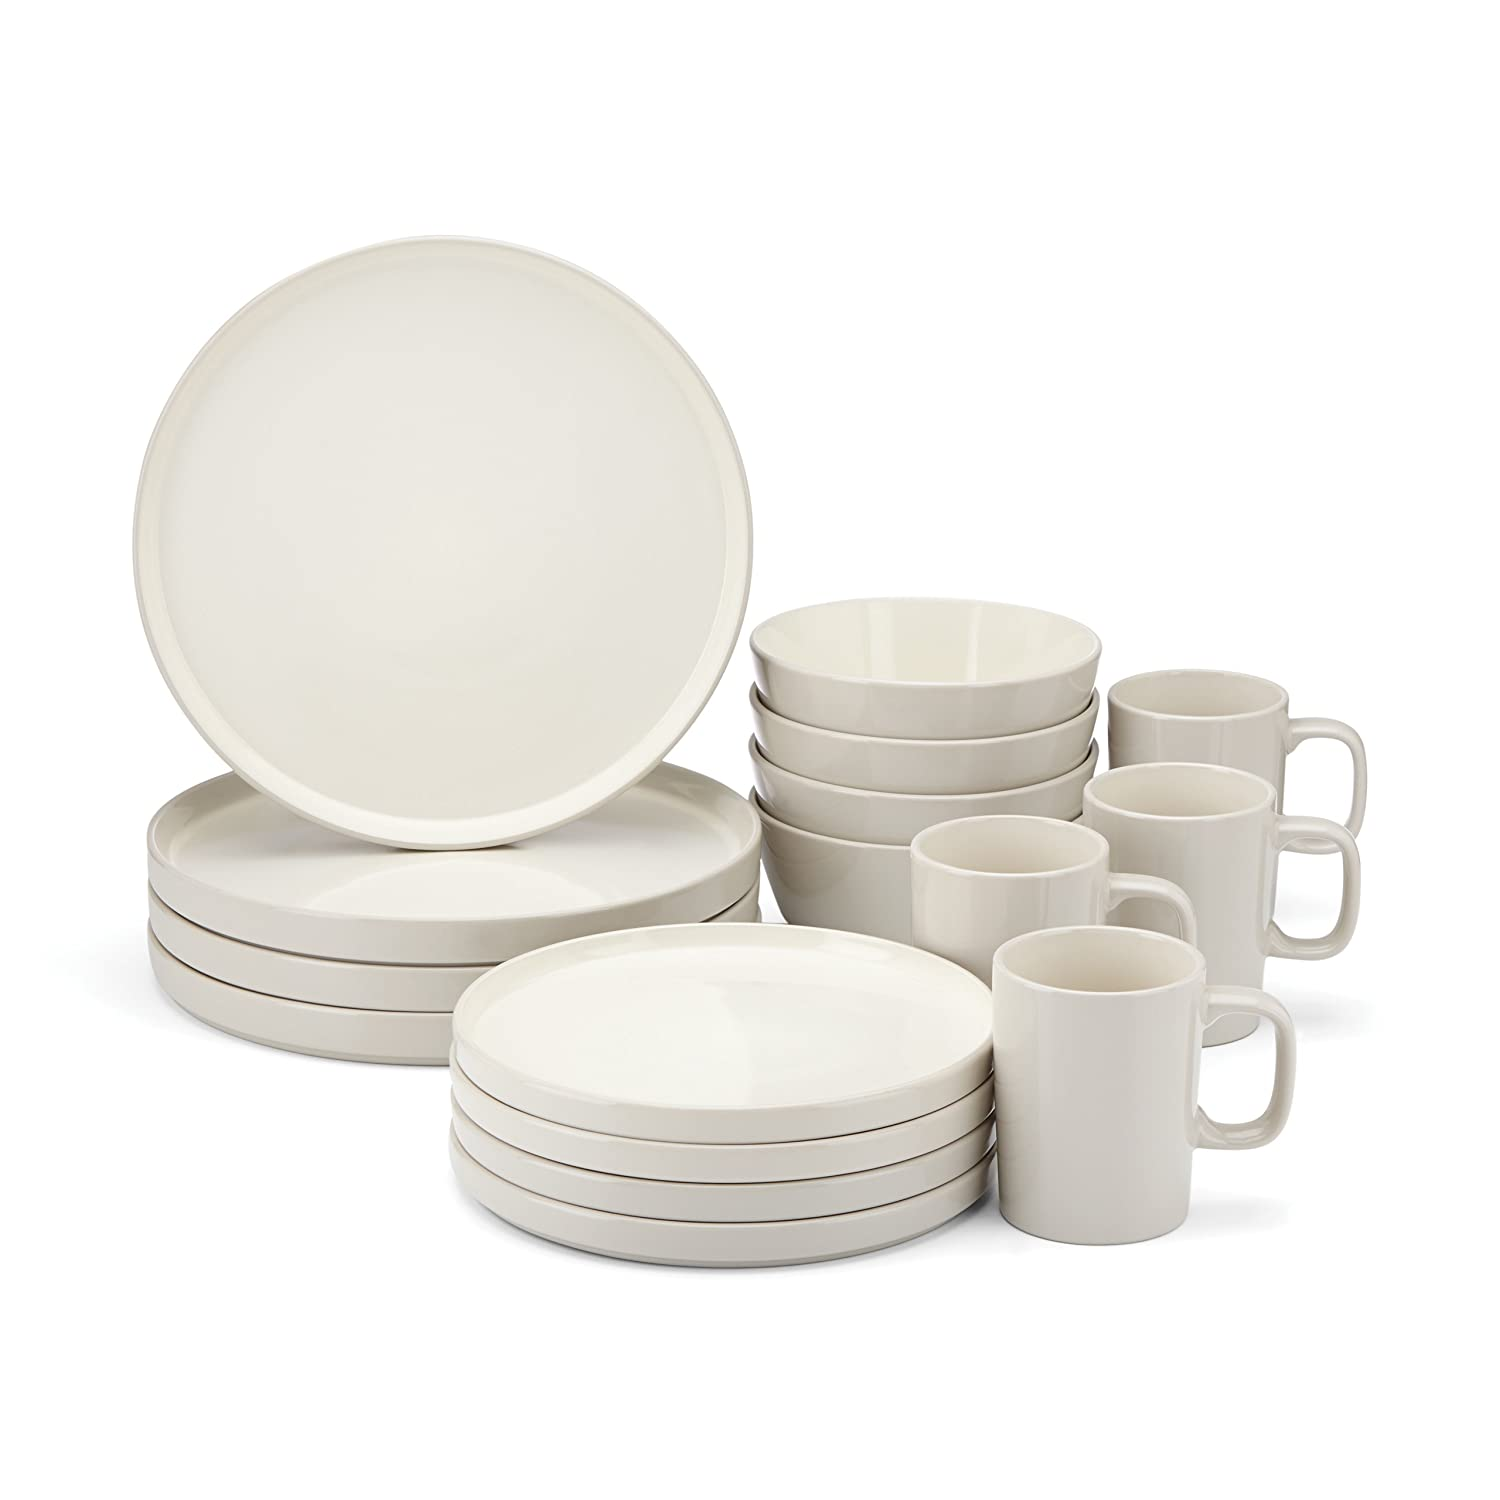 Amazon.com Food \u0026 Wine For Gorham Modern Farmhouse 16-Piece Dinnerware Set Barley Kitchen \u0026 Dining  sc 1 st  Amazon.com : gorham dinnerware - pezcame.com